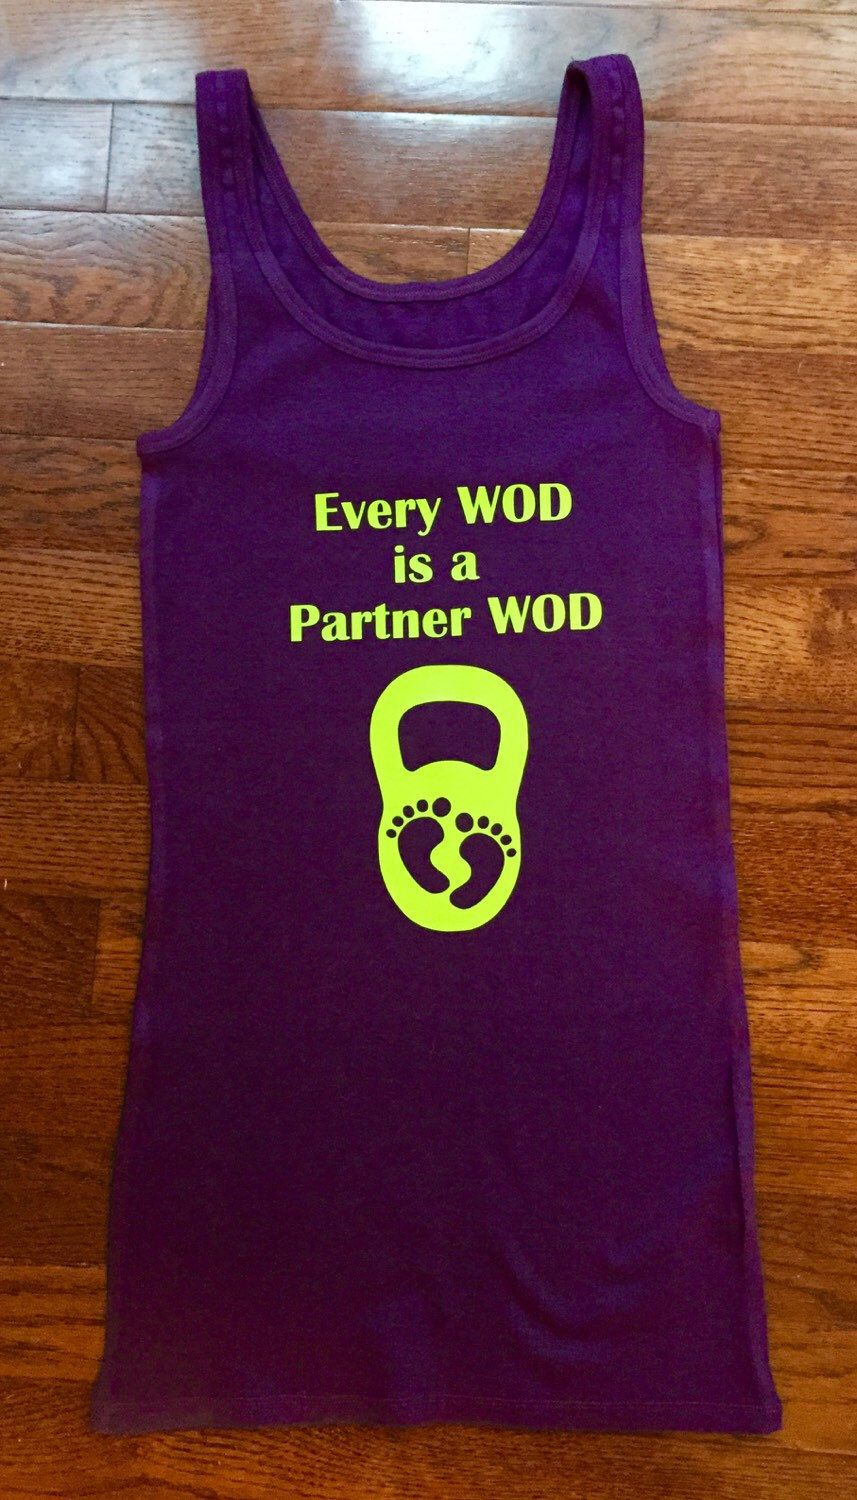 fb29257be89cd Cross Fit Tank Top / Cross Fit Shirt / Exercise Shirt / Funny Pregnancy  Announcement Shirt / Cross Fit Baby / Pregnancy Reveal / Partner WOD |  Crossfit Baby ...